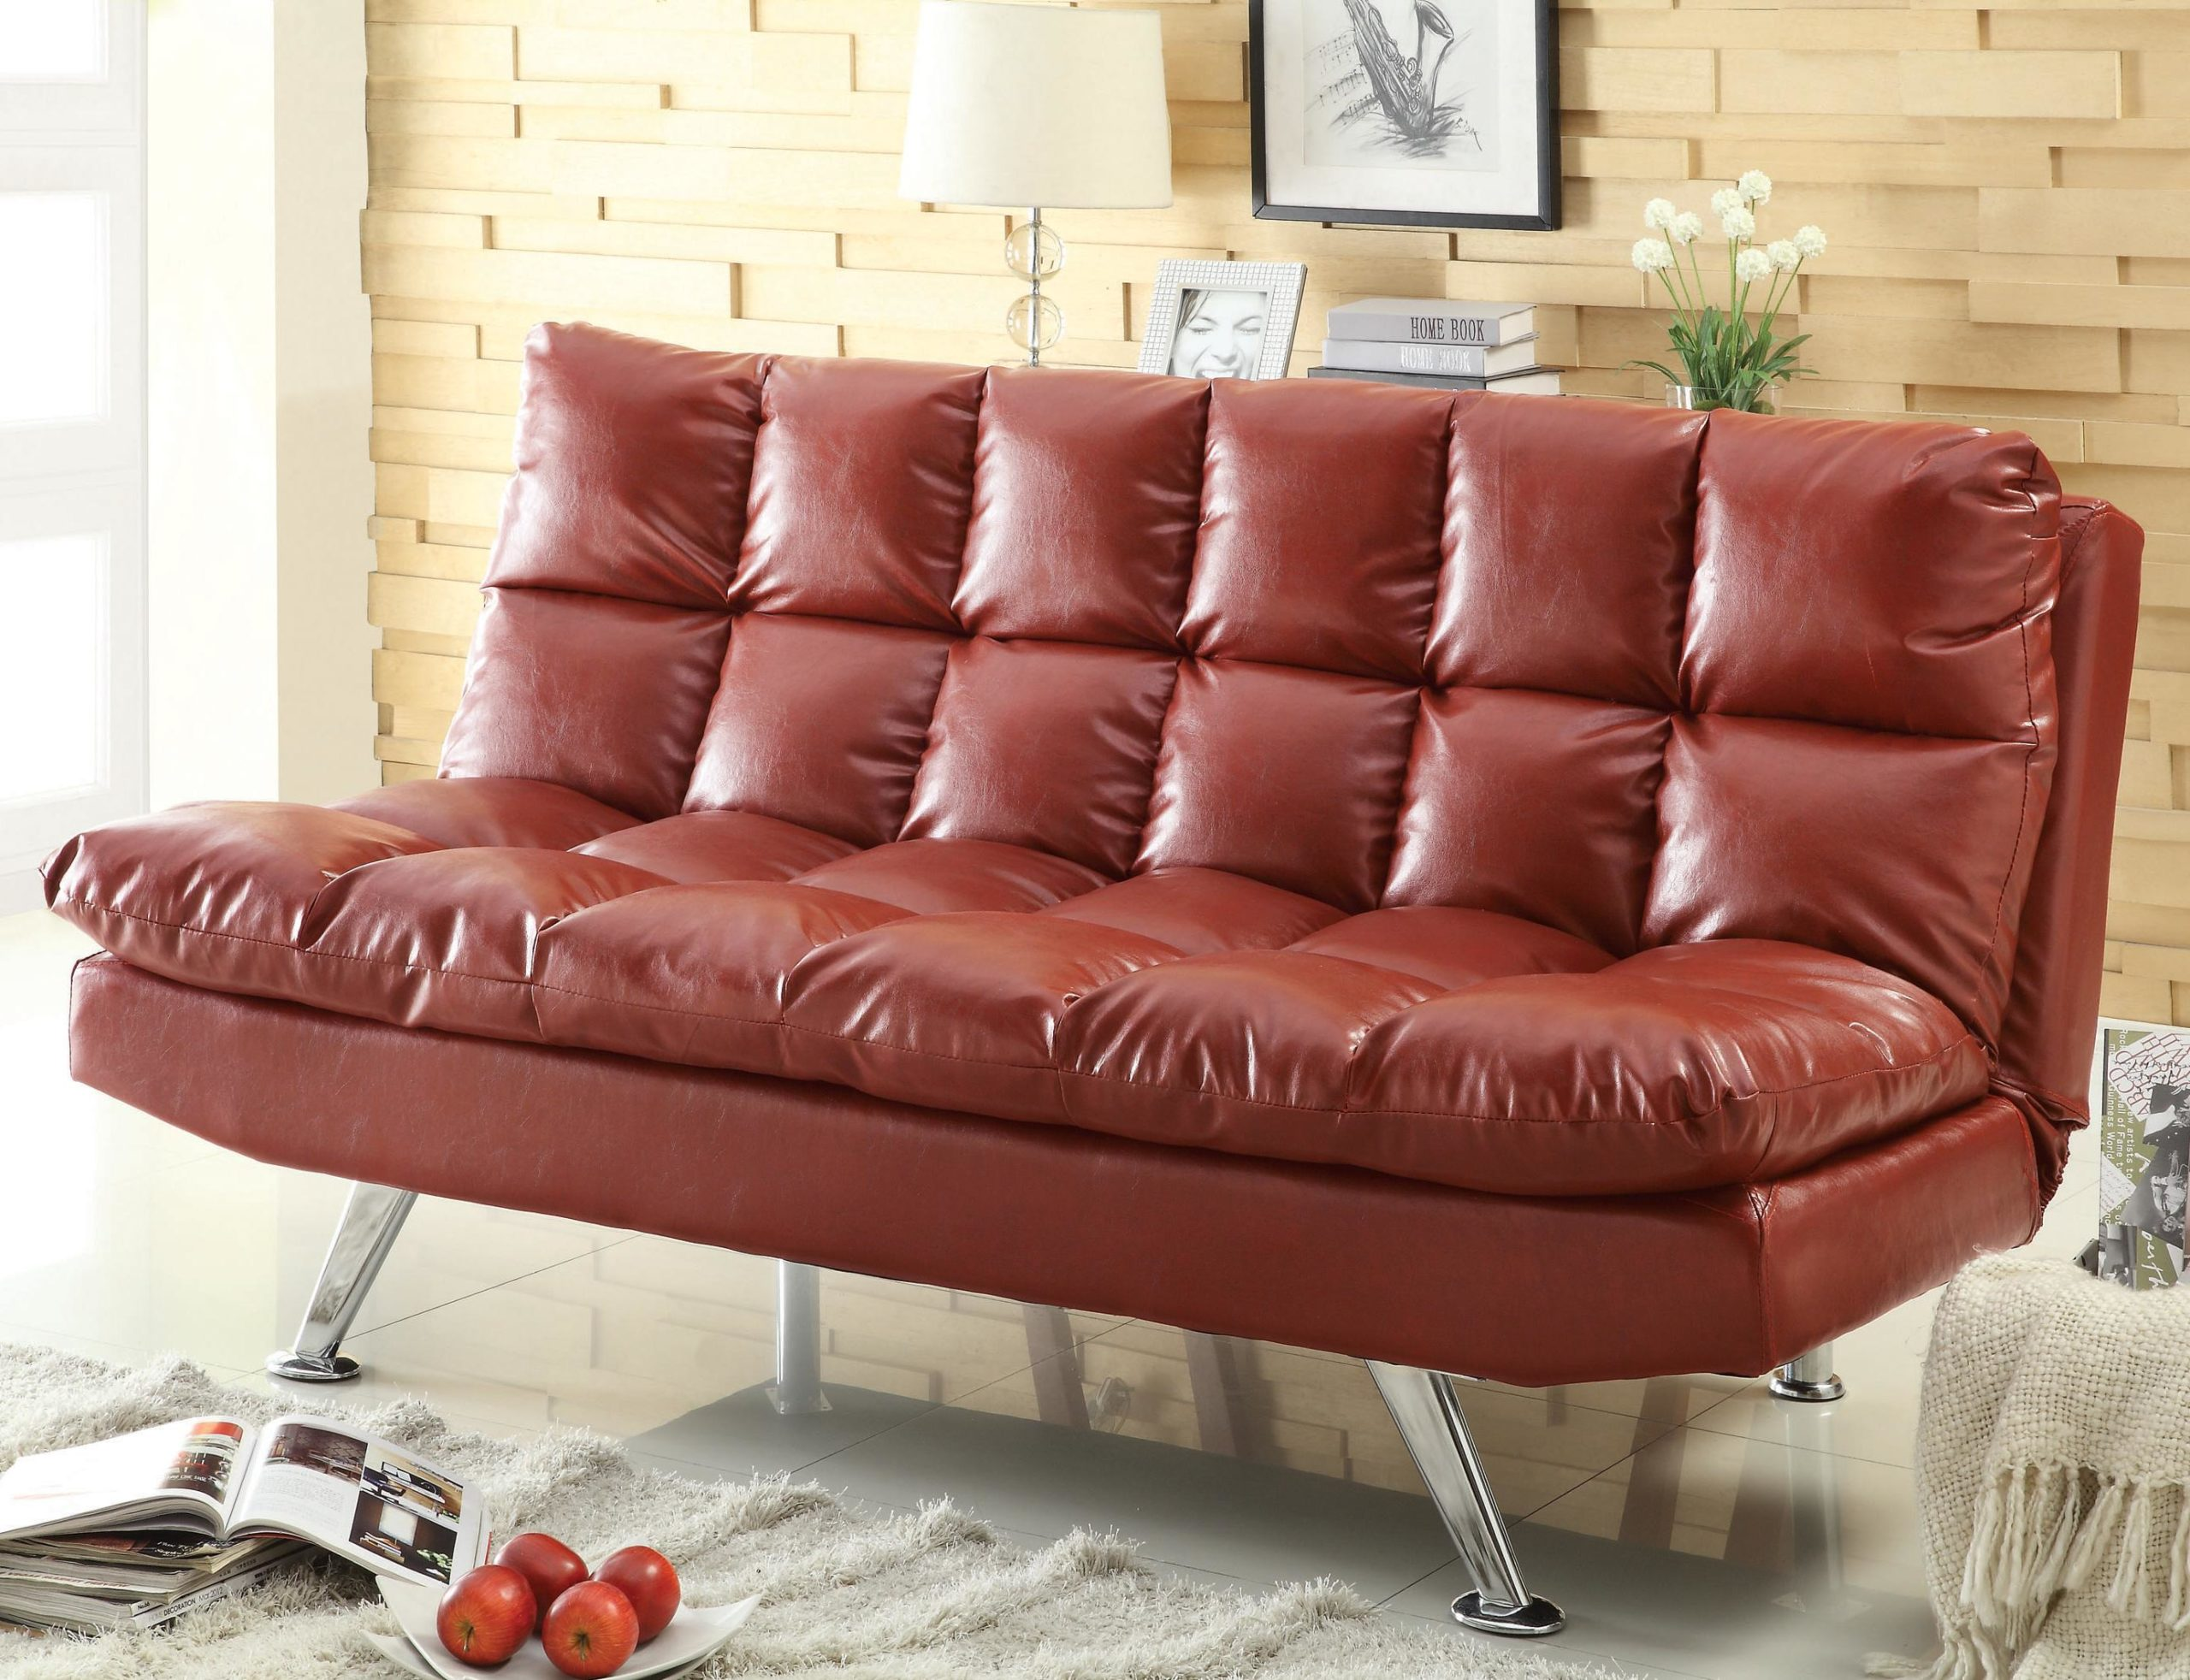 Contemporary Red Vinyl Sofa Bed with Pillow Top Cushioning